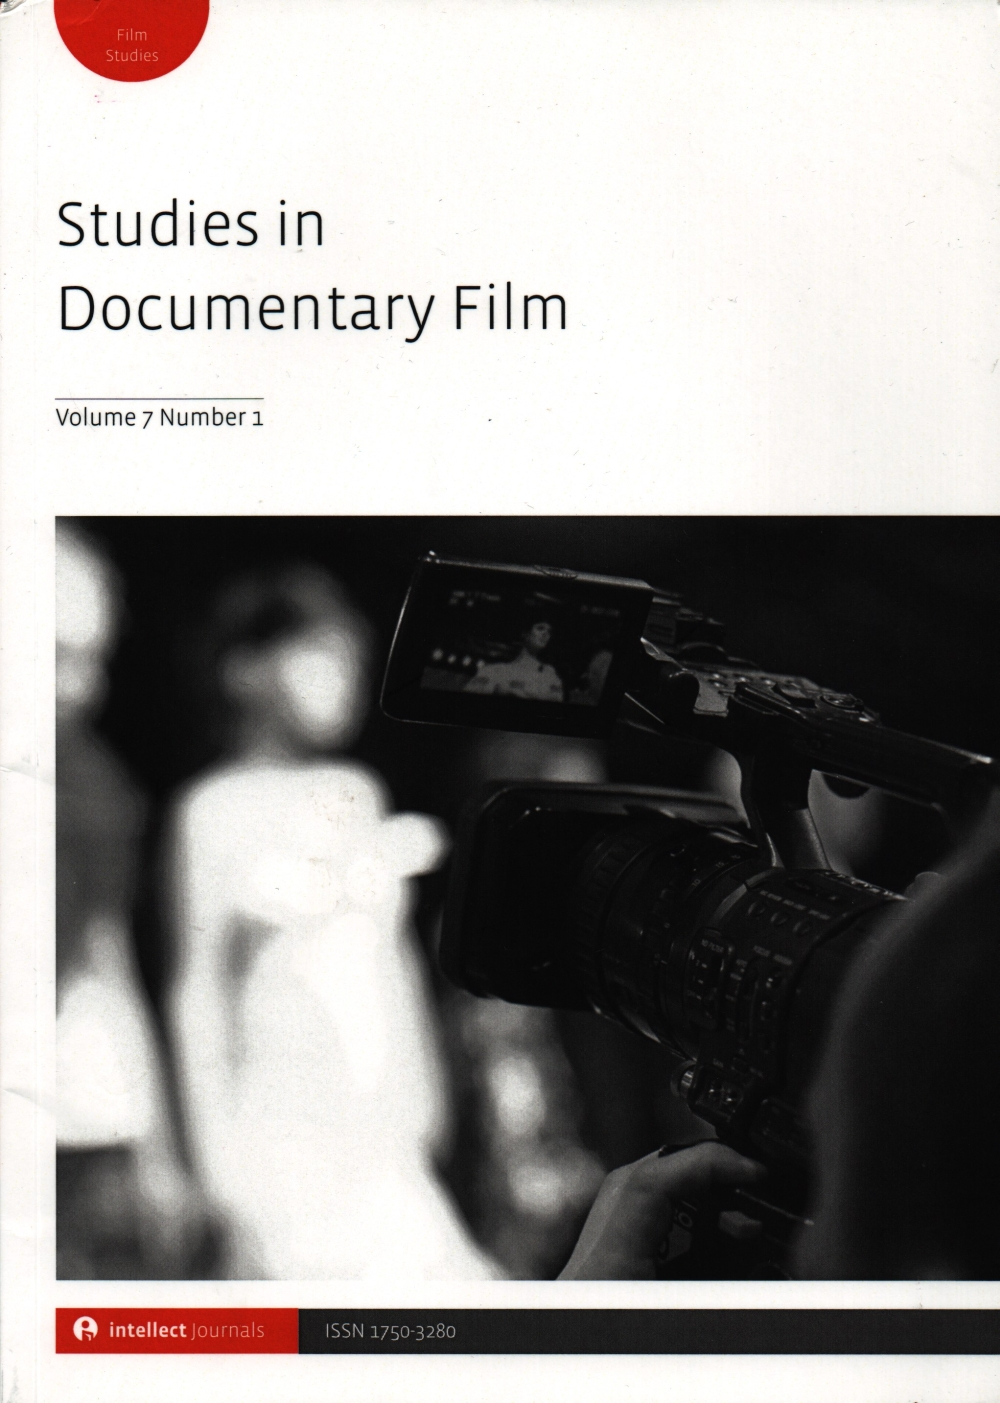 Studies in Documentary Film, Volume 7 Issue 1